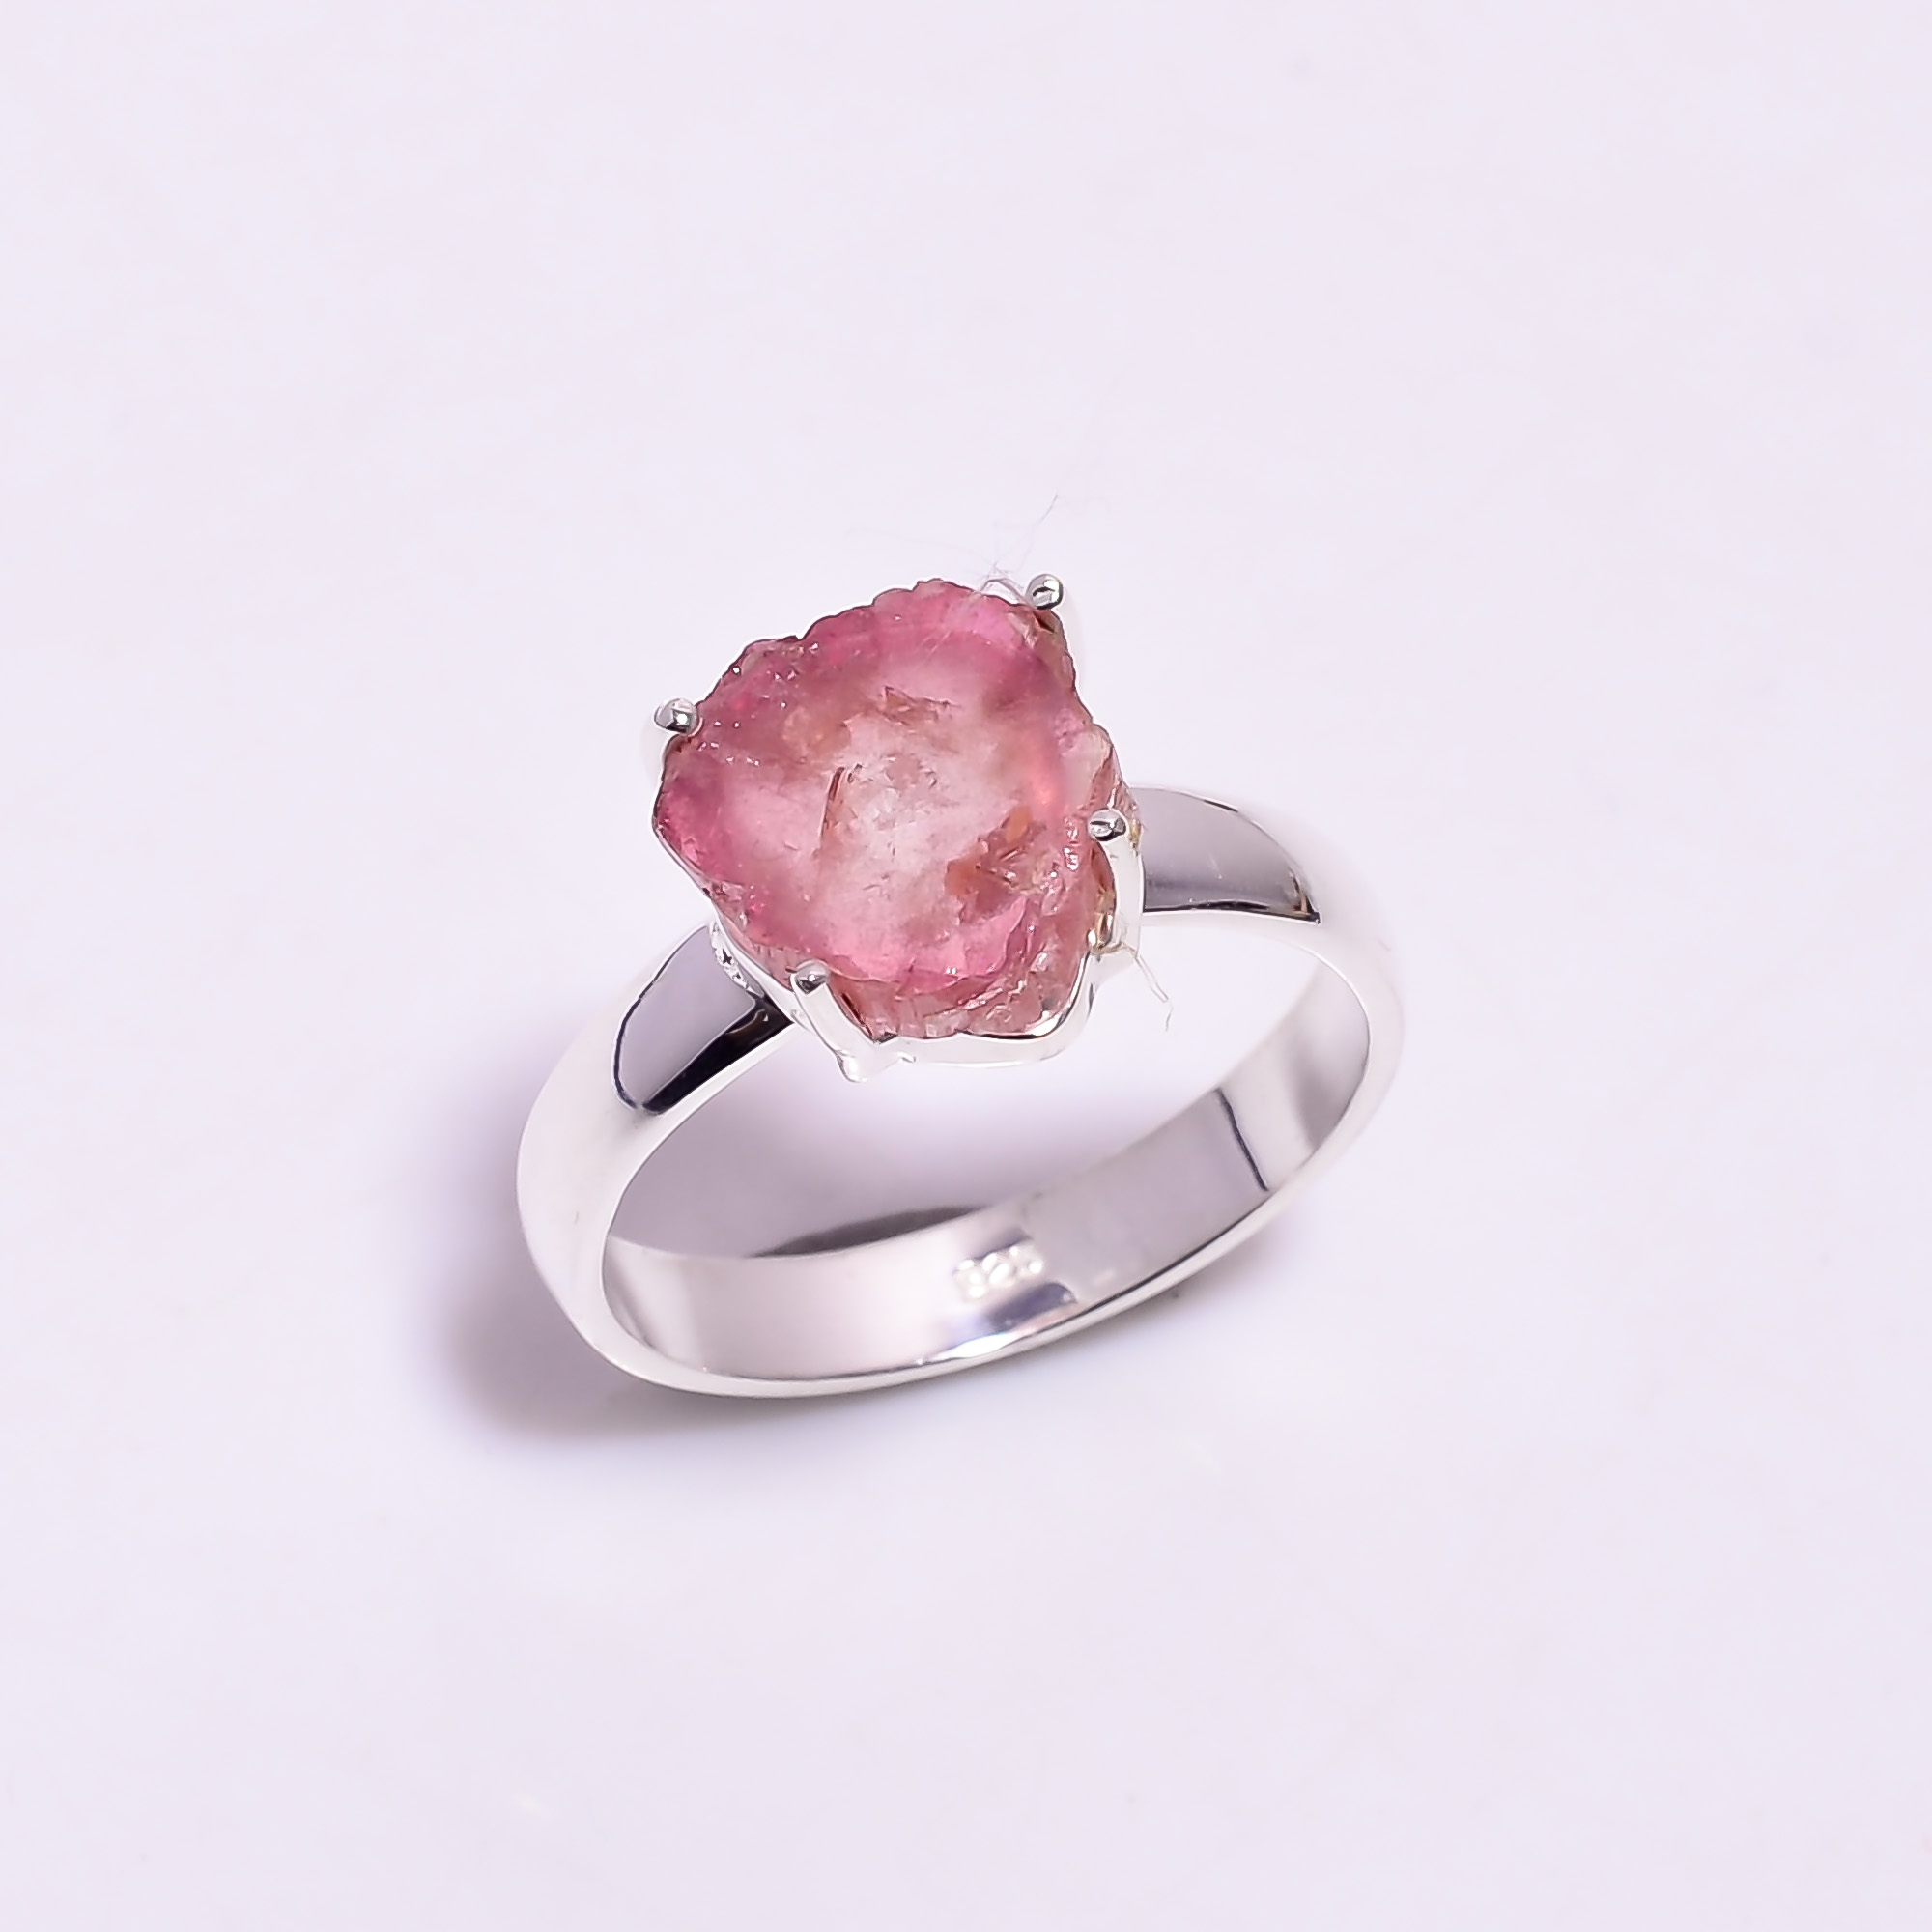 Watermelon Tourmaline Gemstone Raw 925 Sterling Silver Ring Size US 7.25